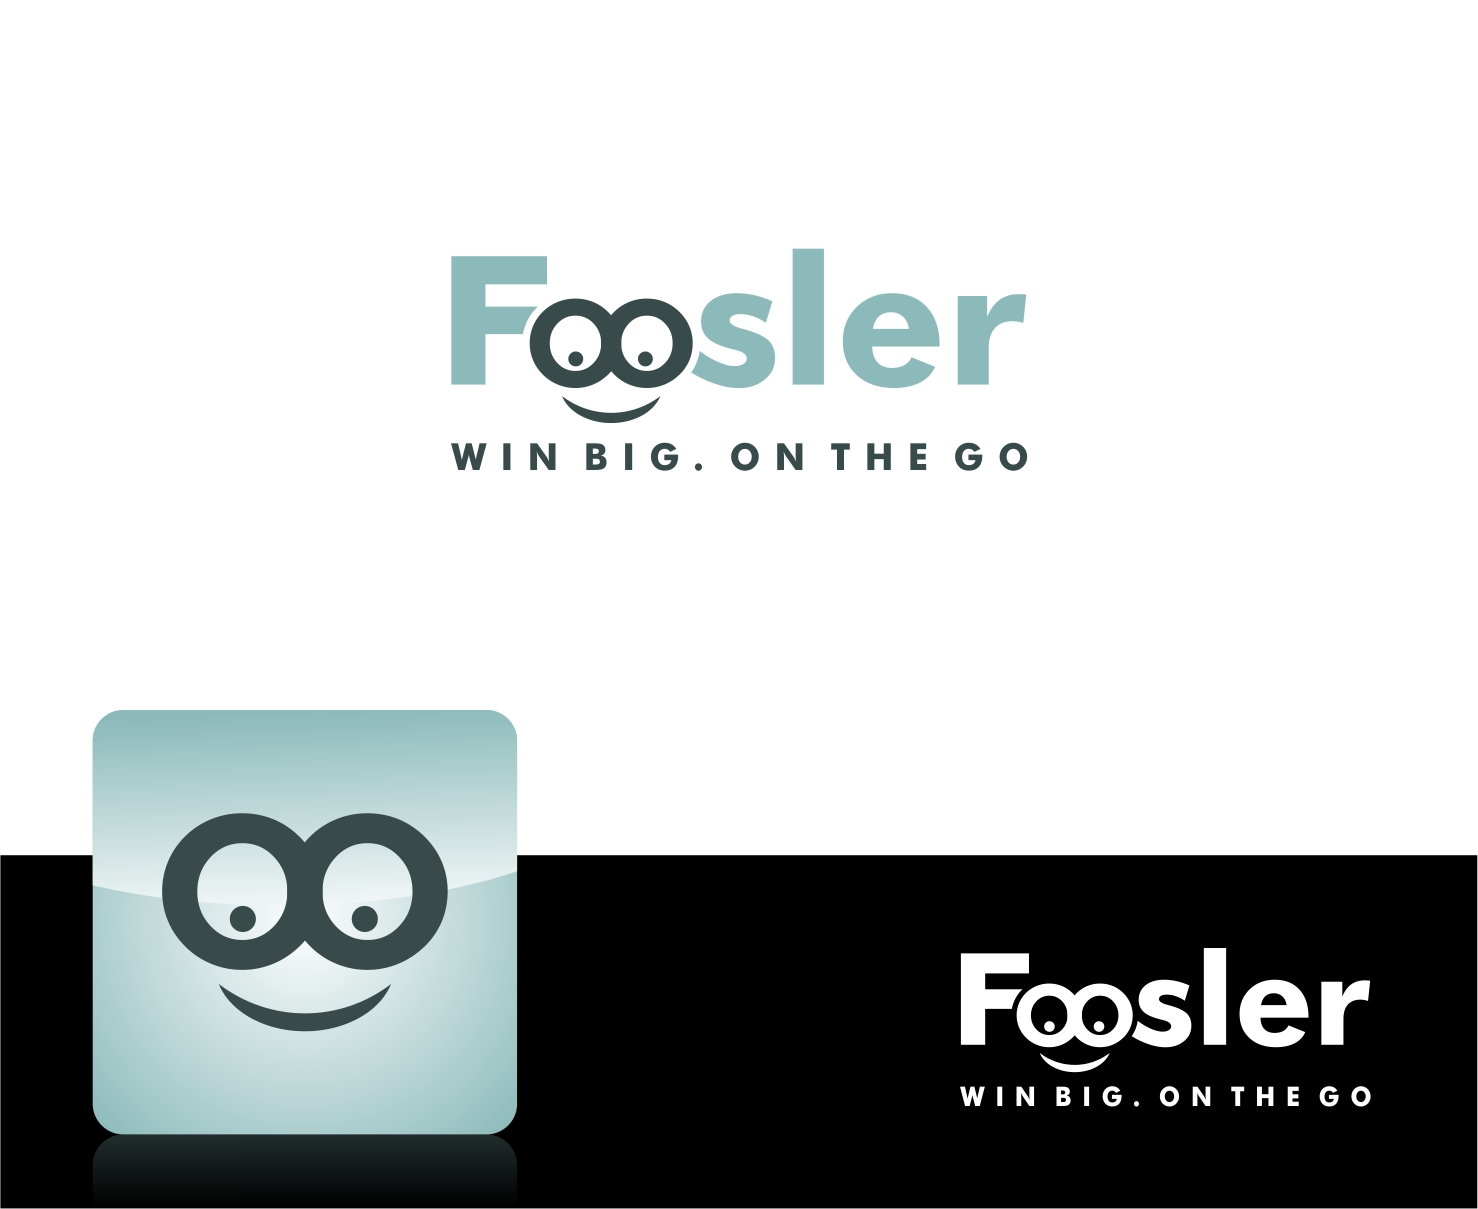 Logo Design by haidu - Entry No. 15 in the Logo Design Contest Foosler Logo Design.